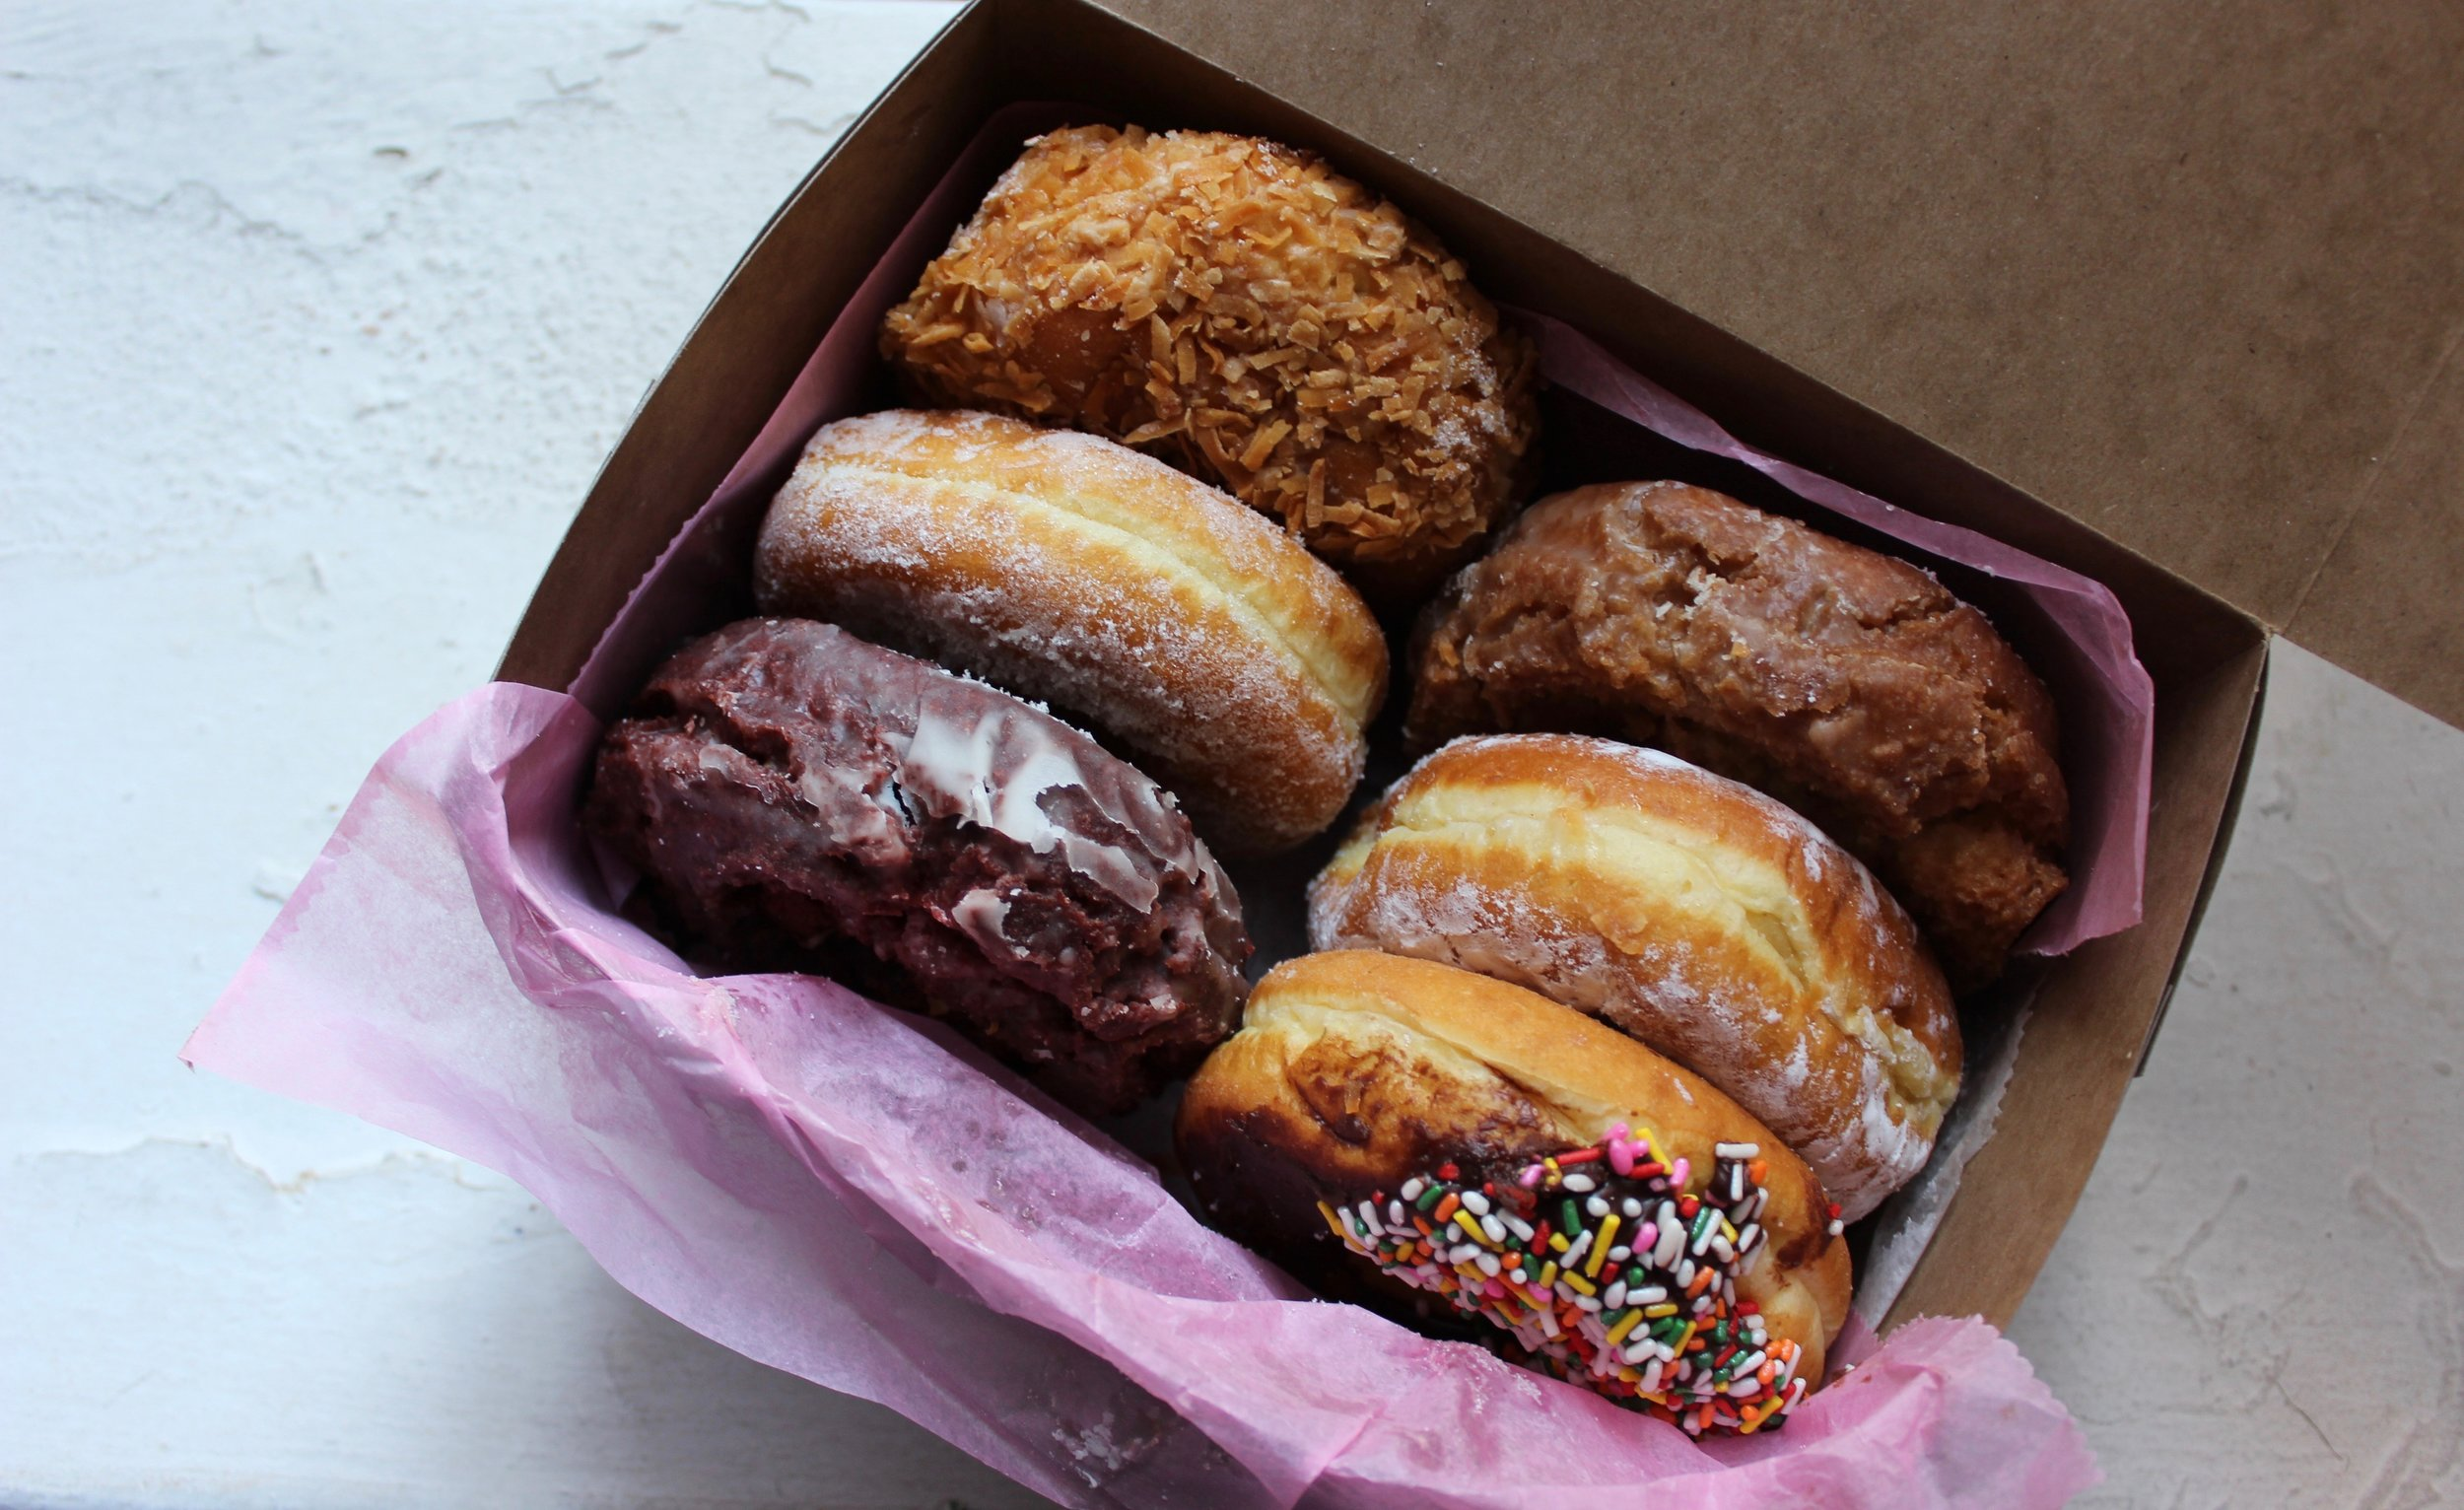 new donut picture 2.jpg